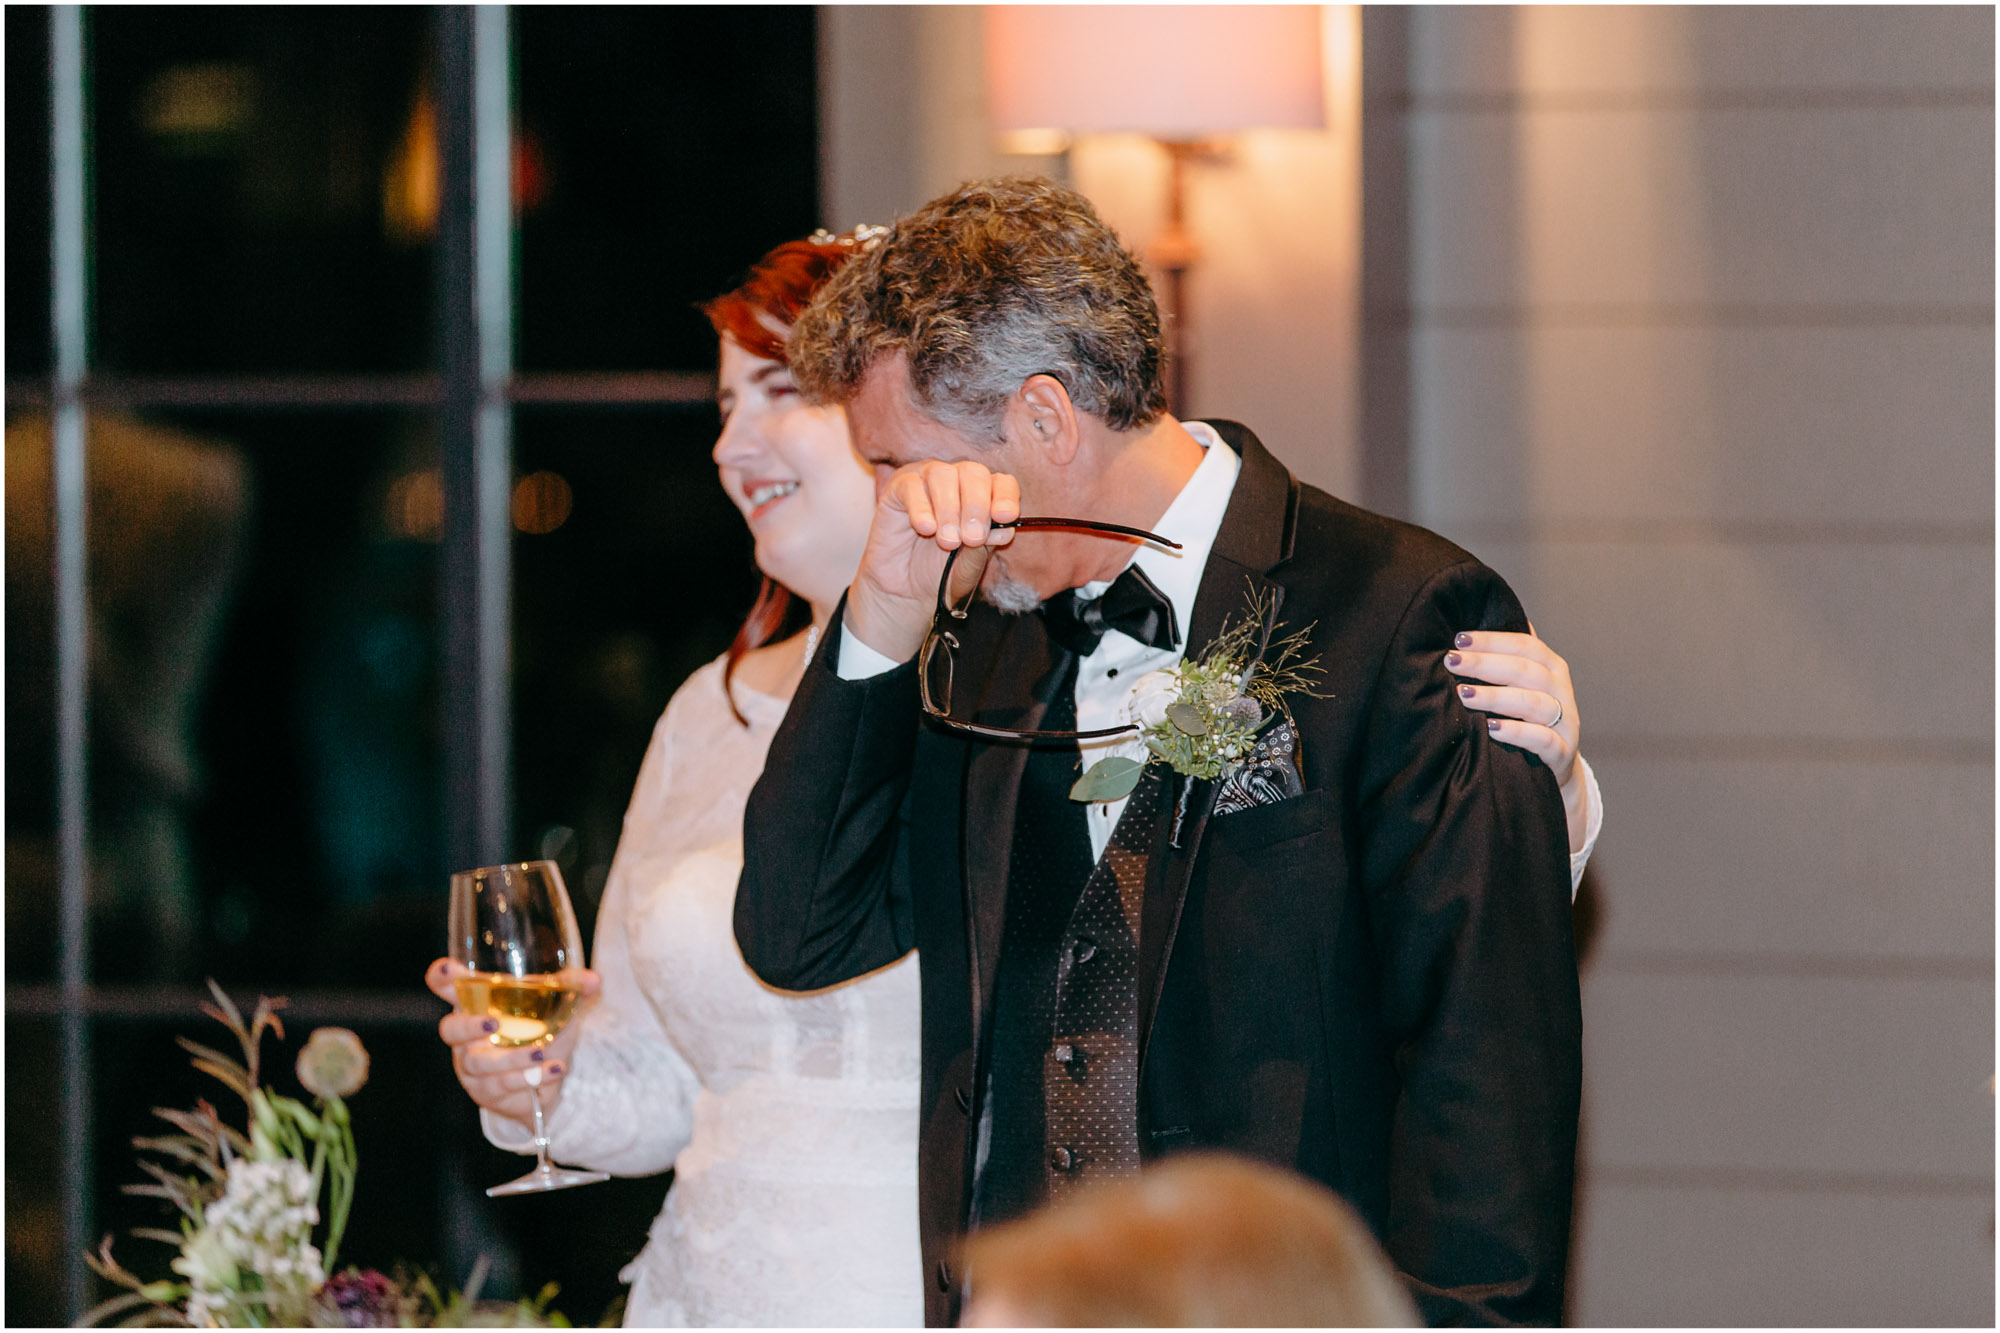 Father of the groom cries happy tears and wipes his eyes at reception - by Ashleigh Laureen Photography at LaBelle Winery in Amherst, New Hampshire